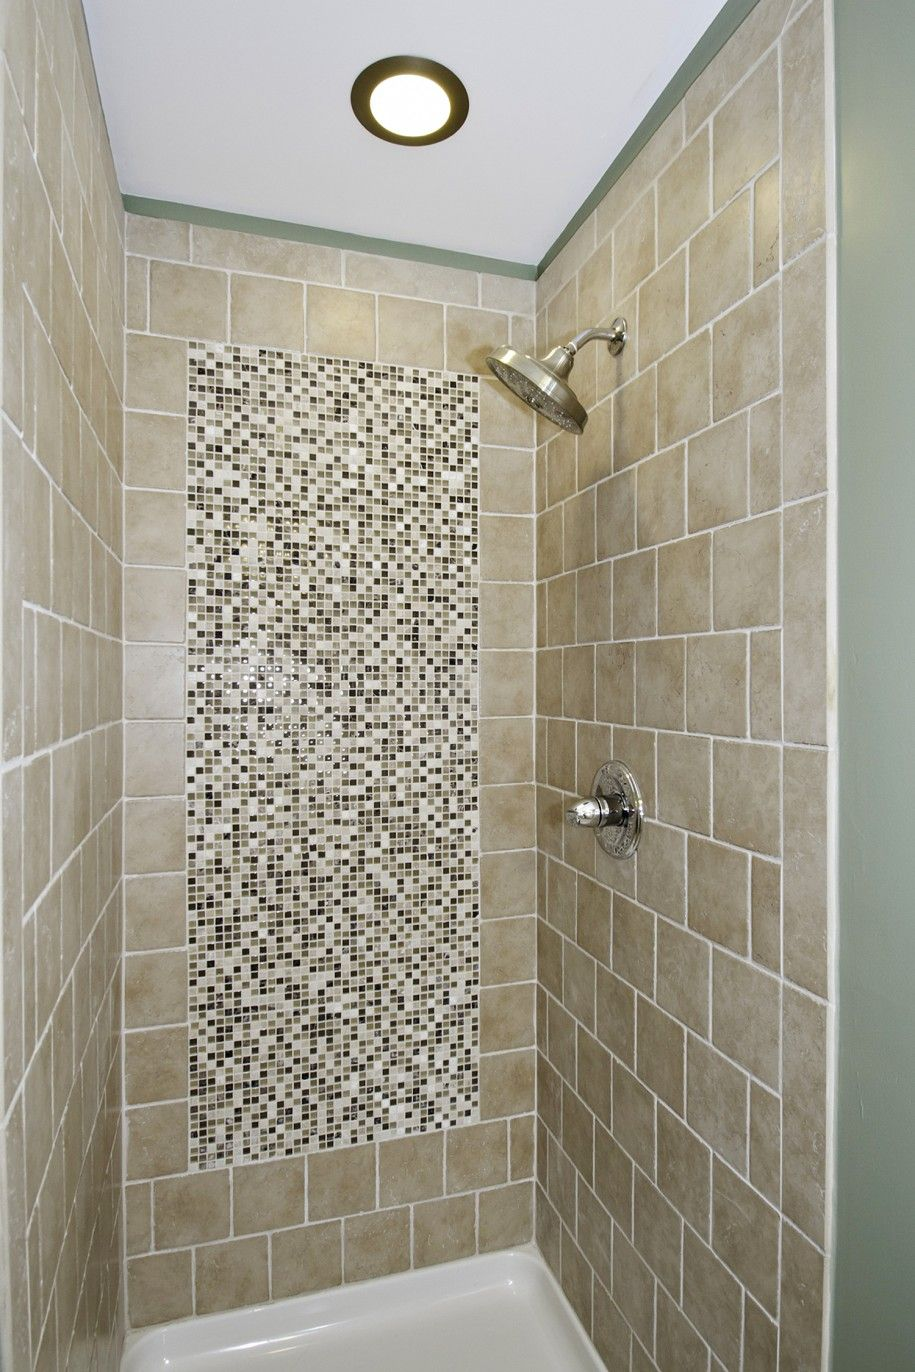 shower wall tile designs if you are in the process of decorating your house the topic of interior wall design will leave many stumped